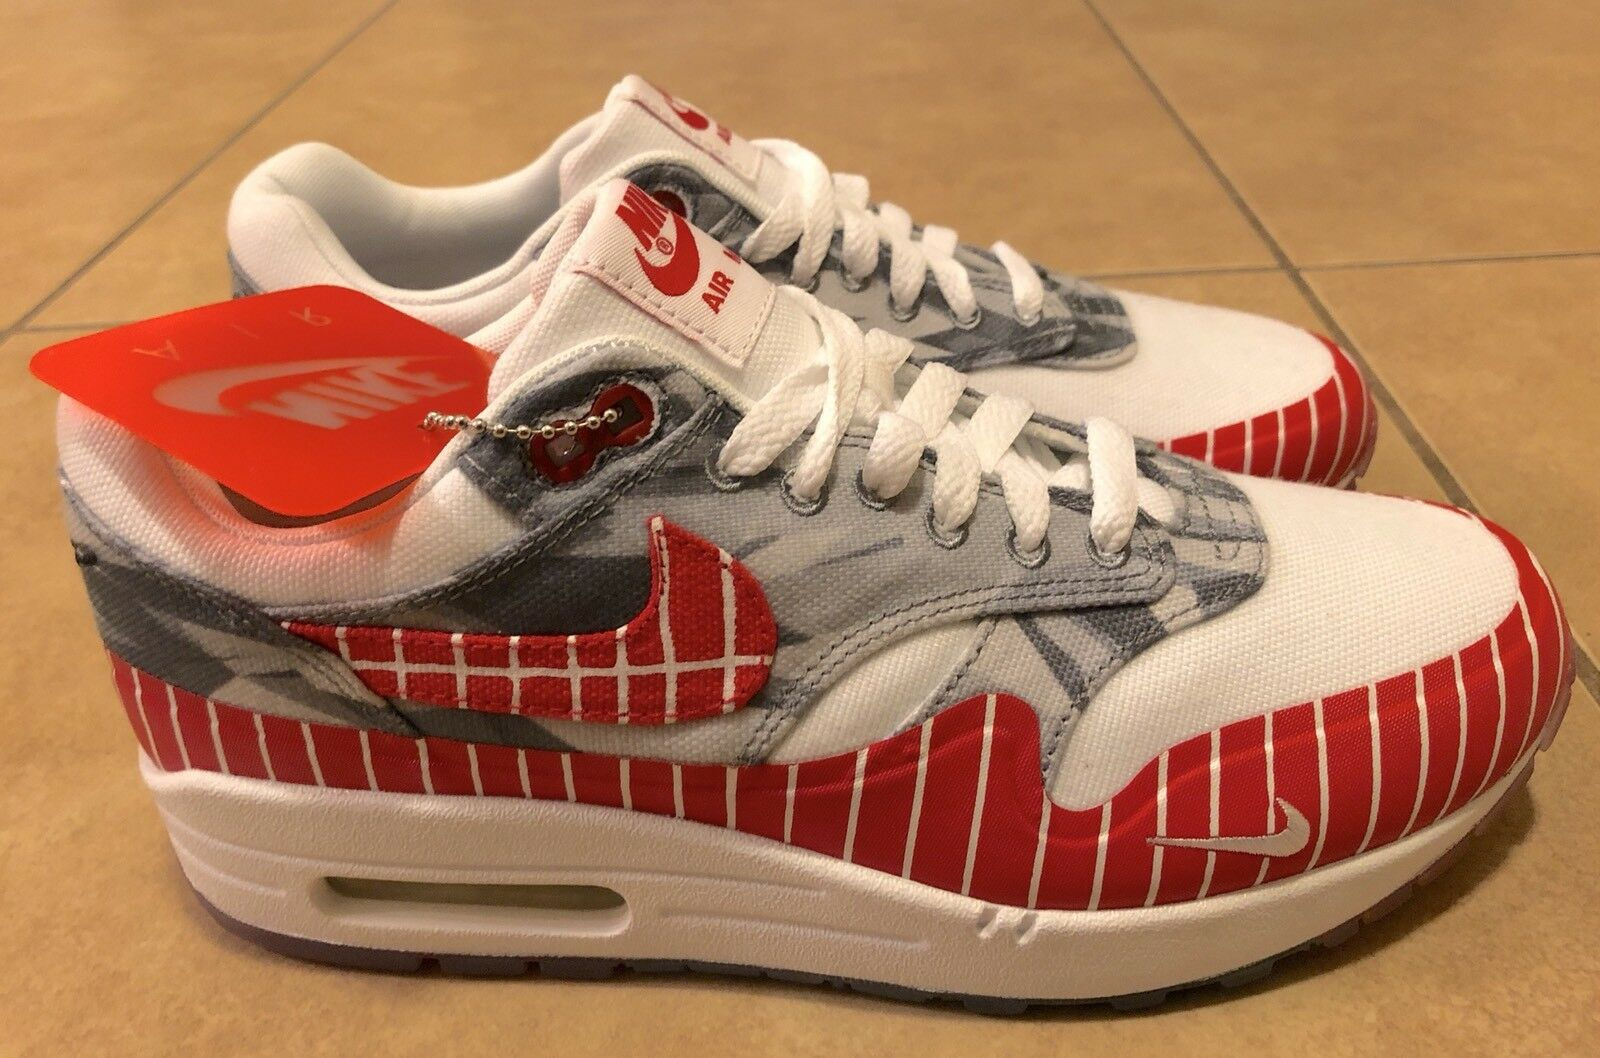 Nike Air Max 1 LHM White University Red Los Primeros AH7740-100 Men's Comfortable Seasonal price cuts, discount benefits Seasonal price cuts, discount benefits